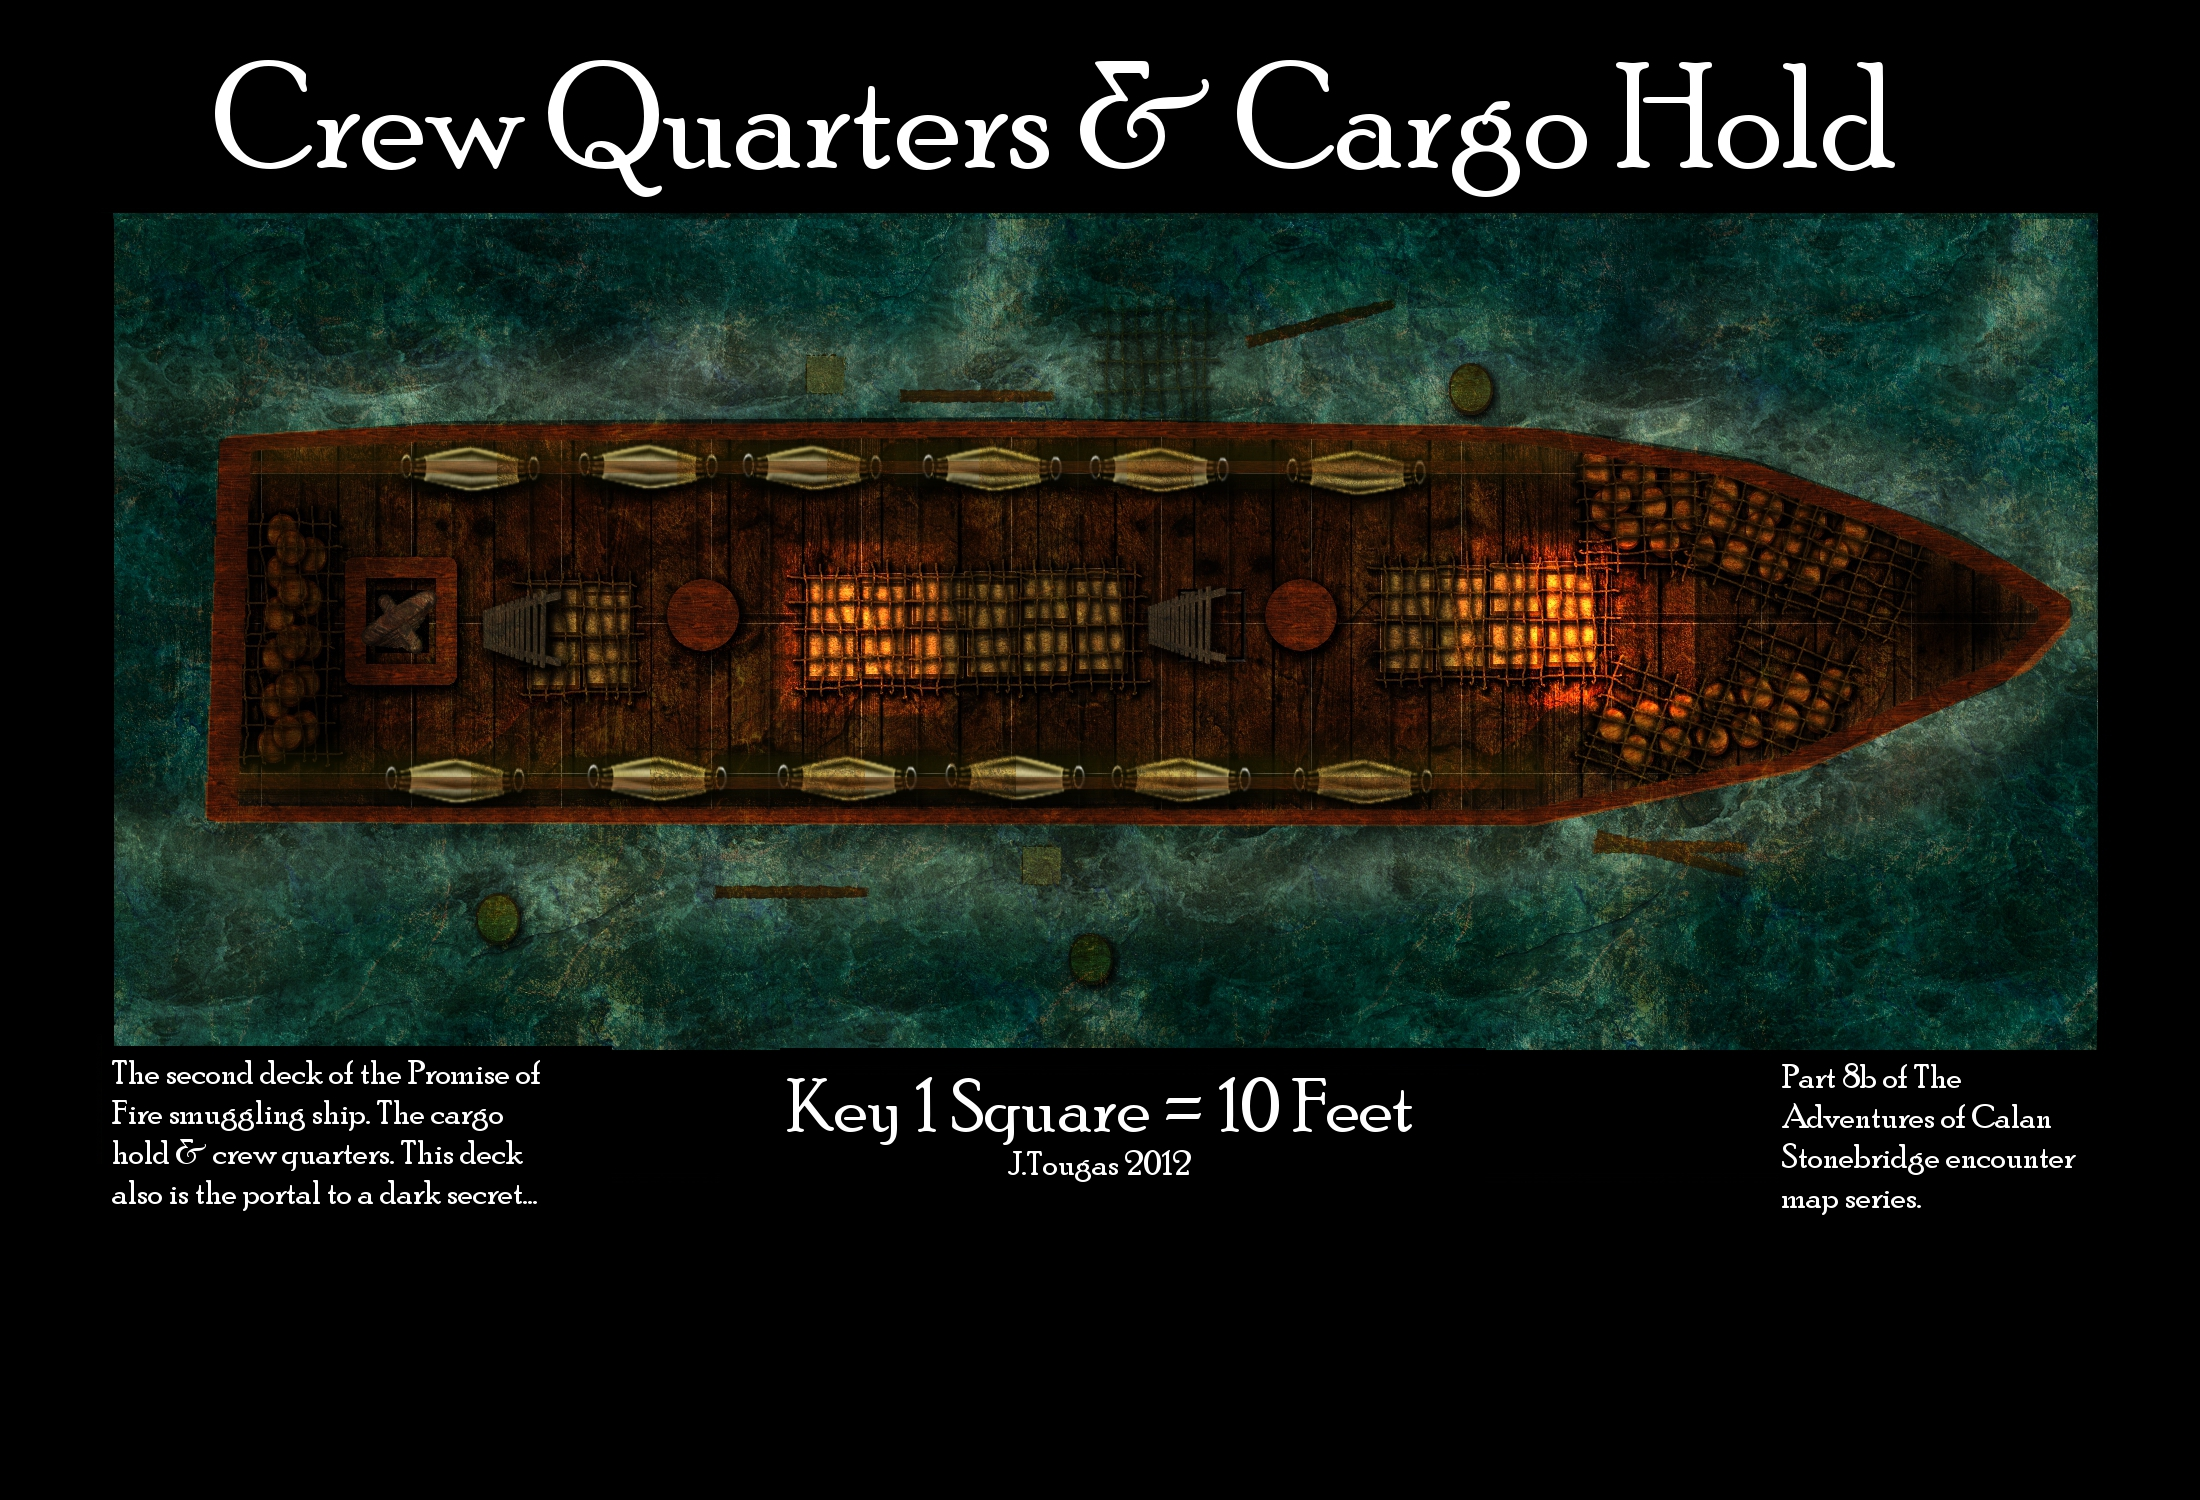 Crew quarters and cargo hold